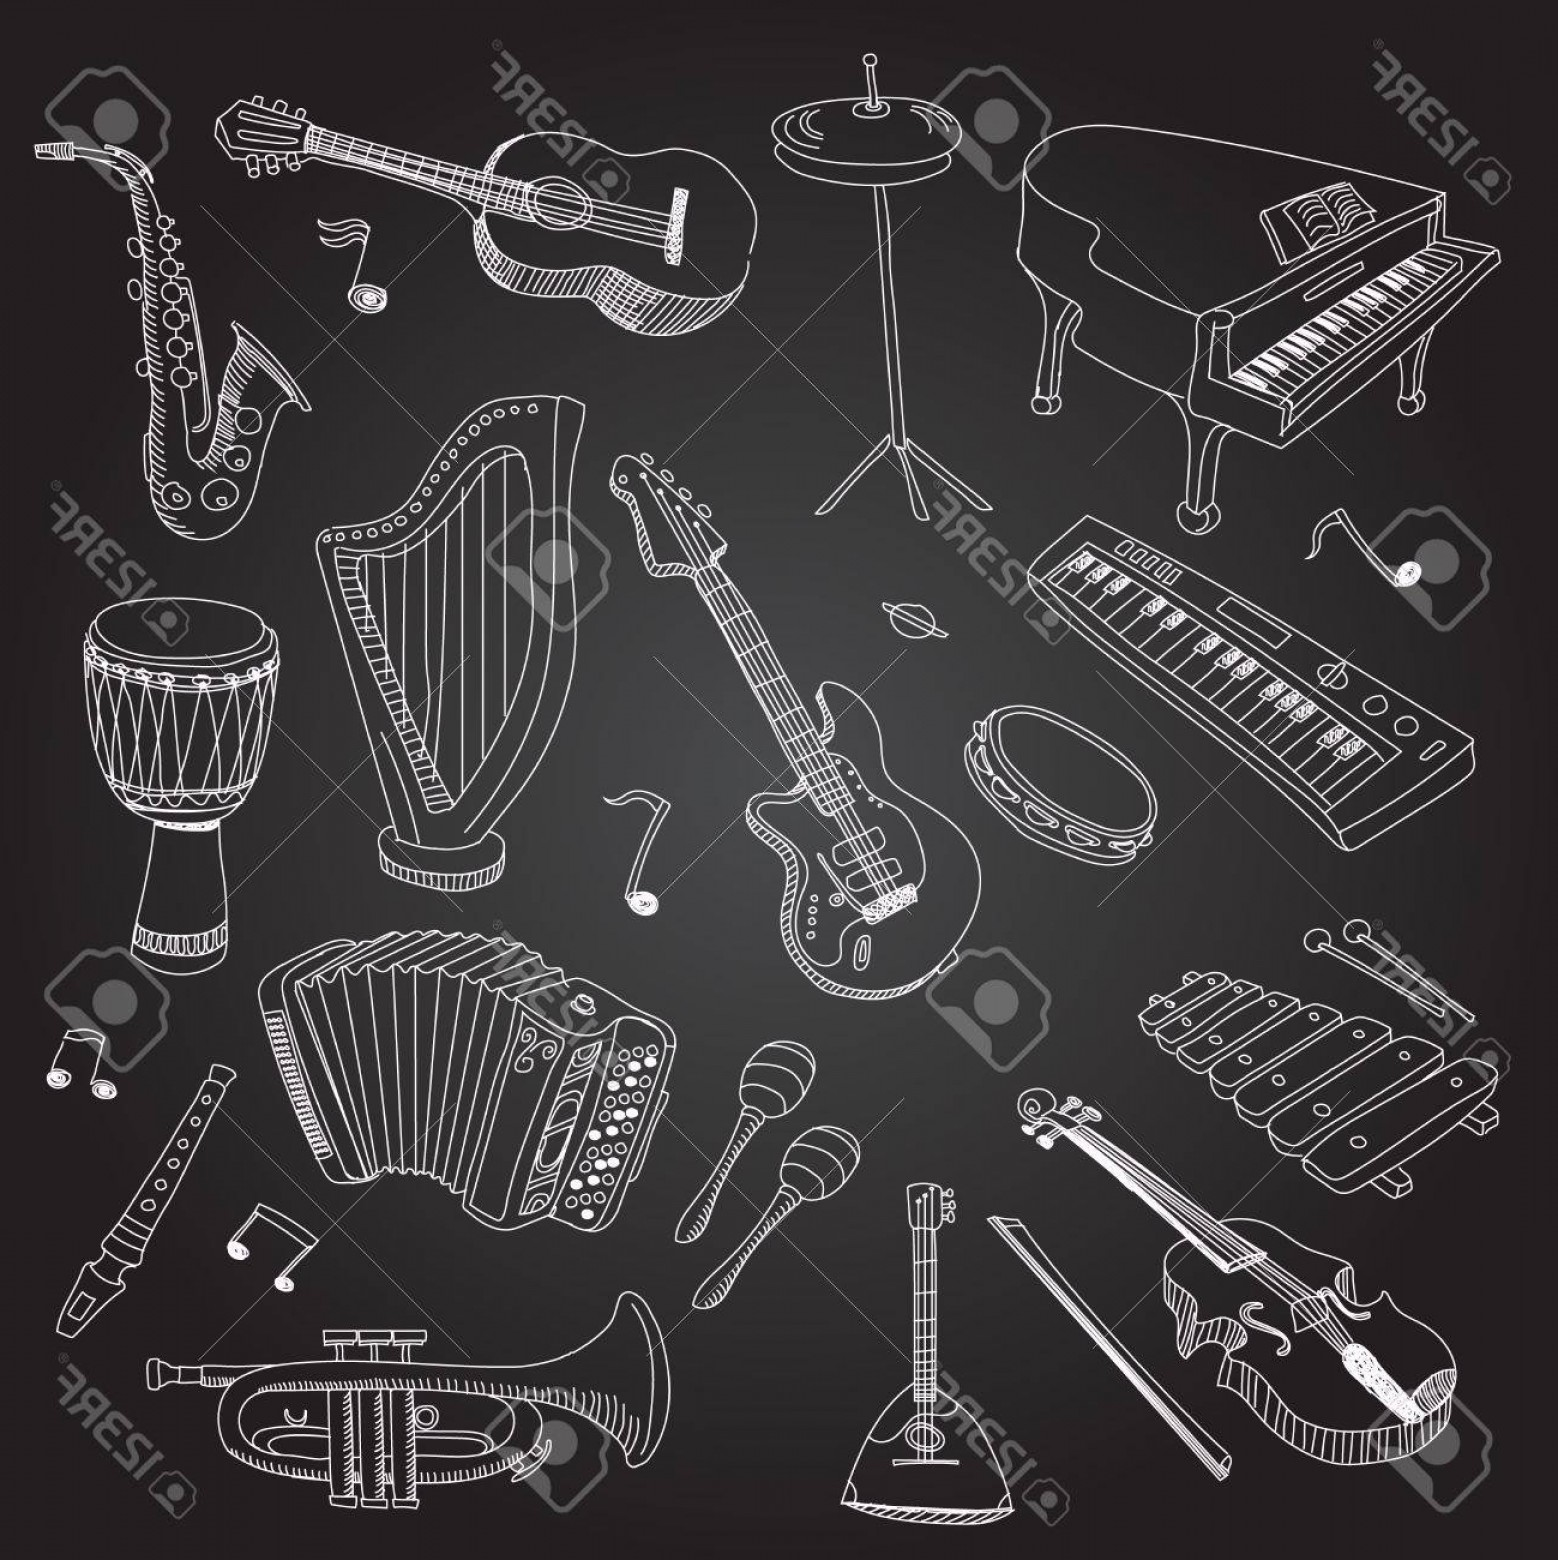 Vector Bass Drum Pedal: Photostock Vector Rock And Pop Music Instruments Guitar Keyboard Synthesizer Drum Pedal Guitar Bass Saxophone Xilophon